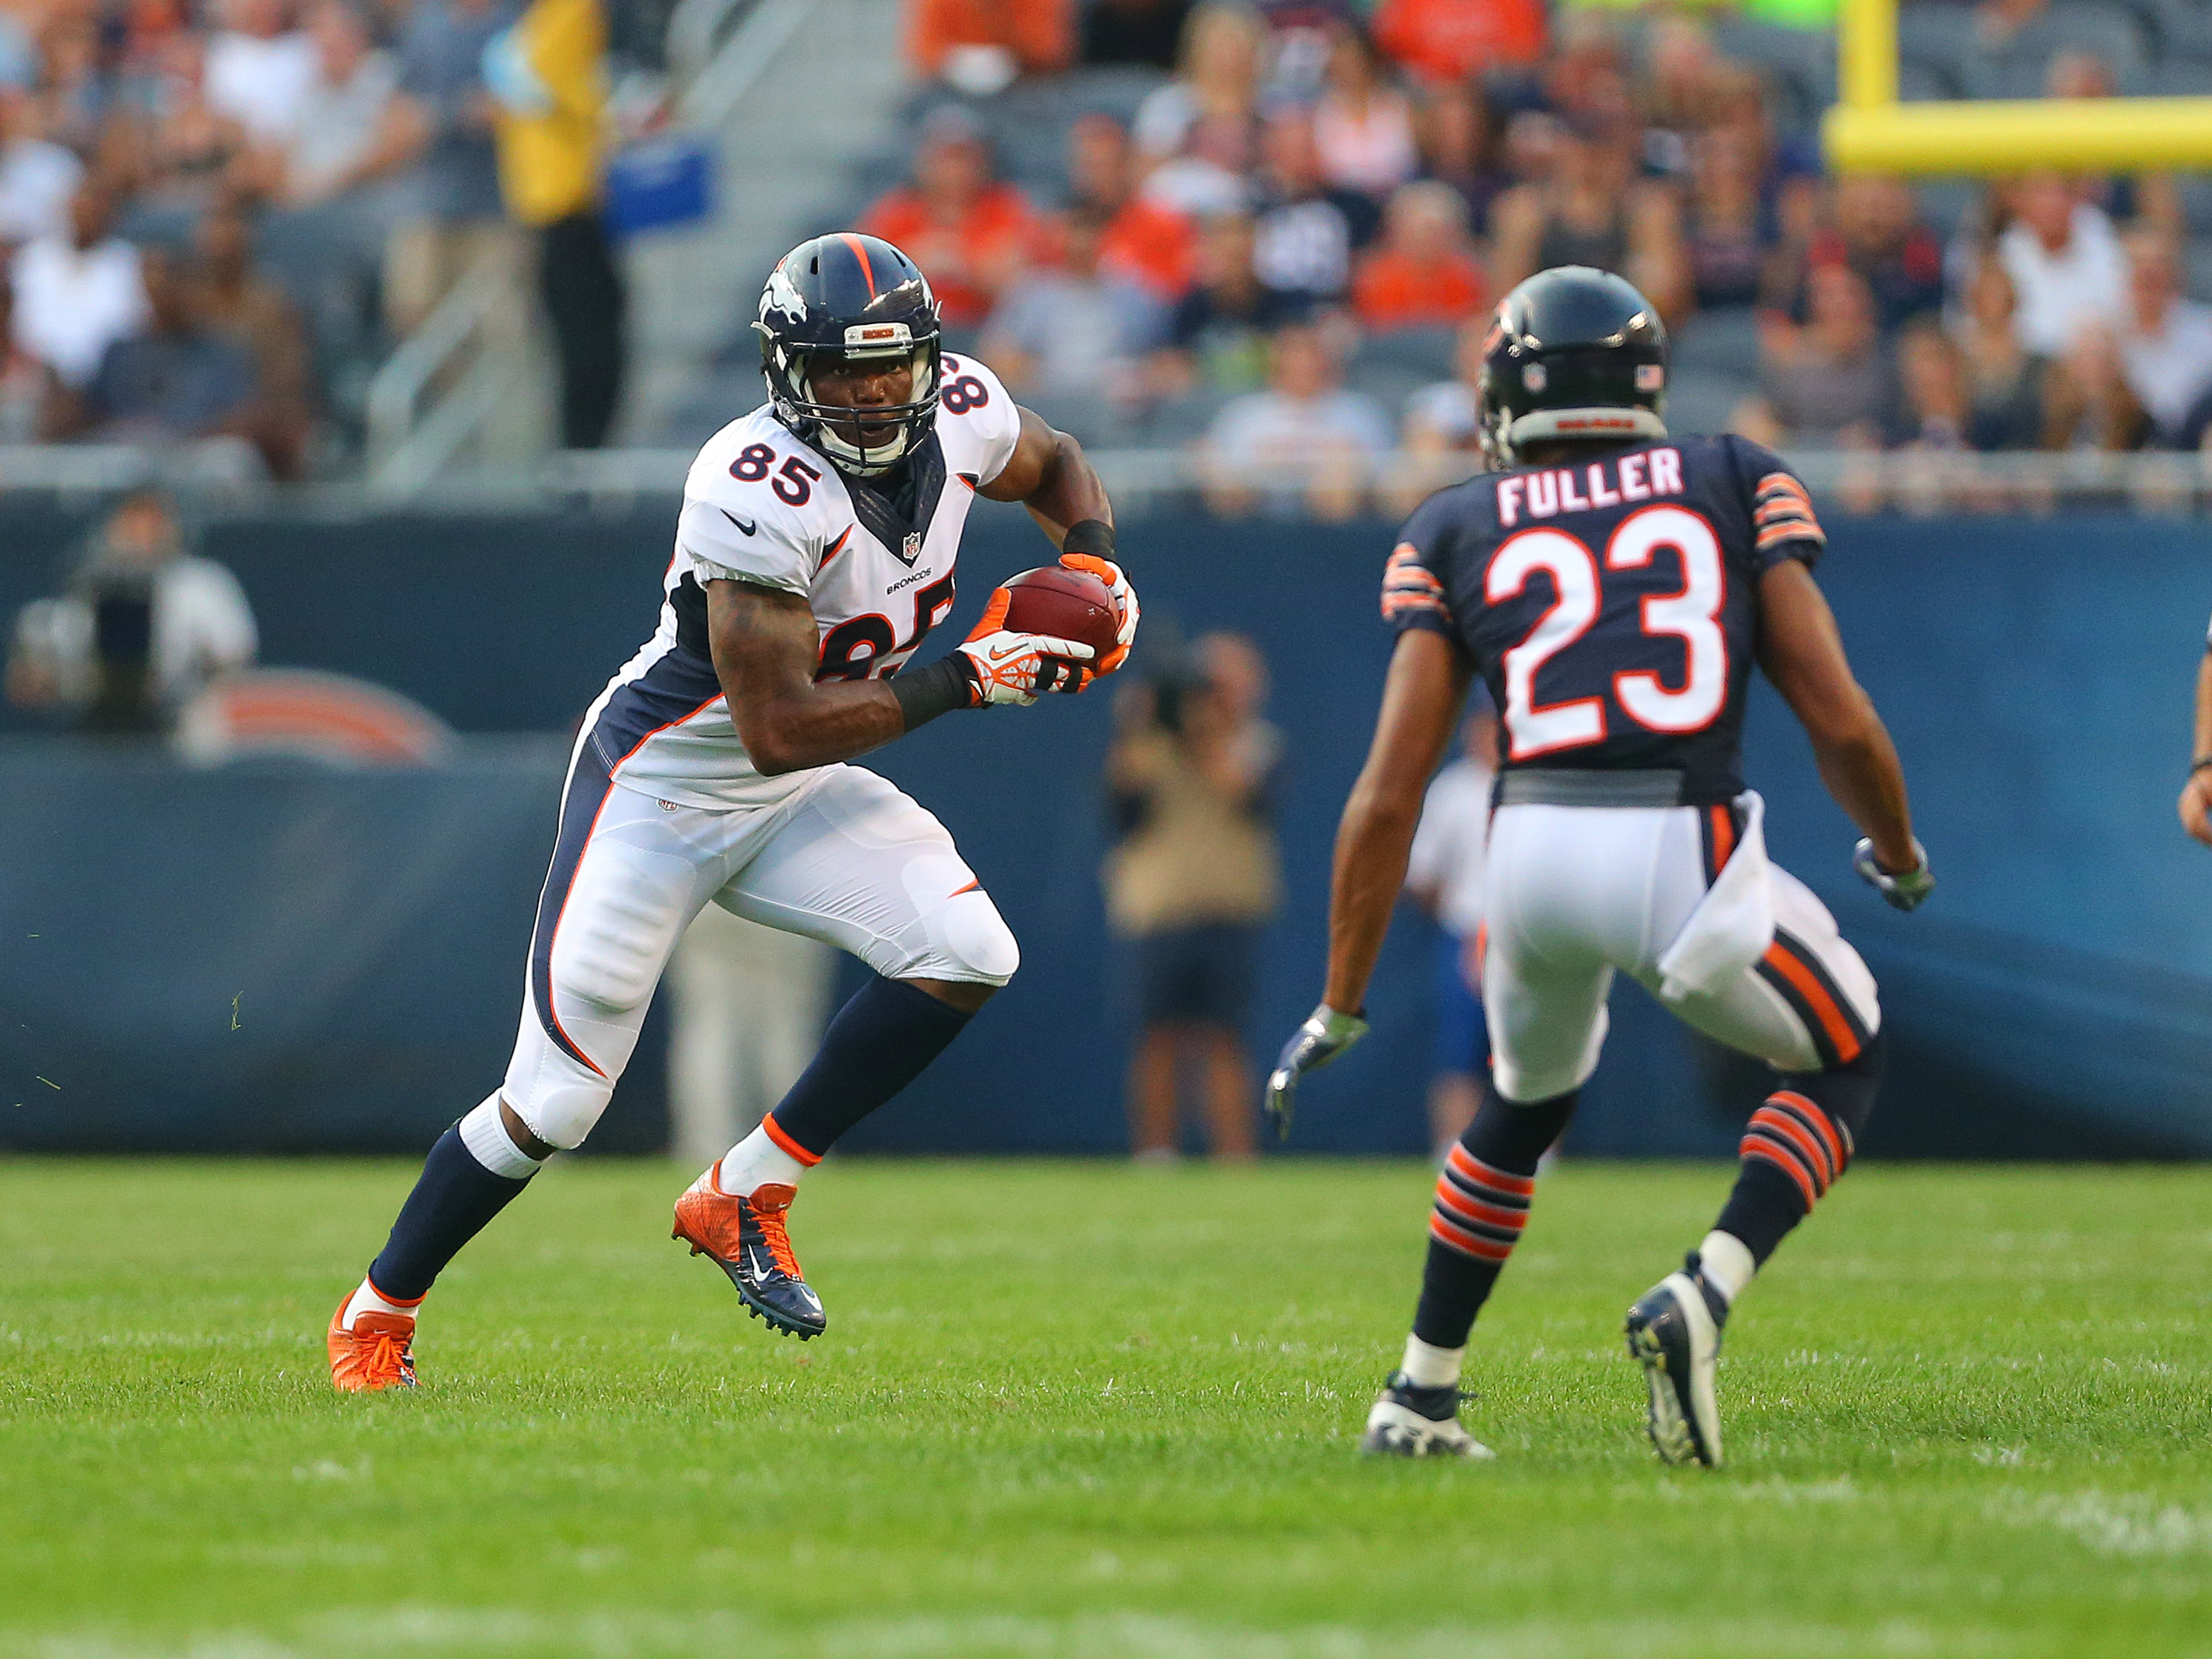 9460454-nfl-preseason-denver-broncos-at-chicago-bears